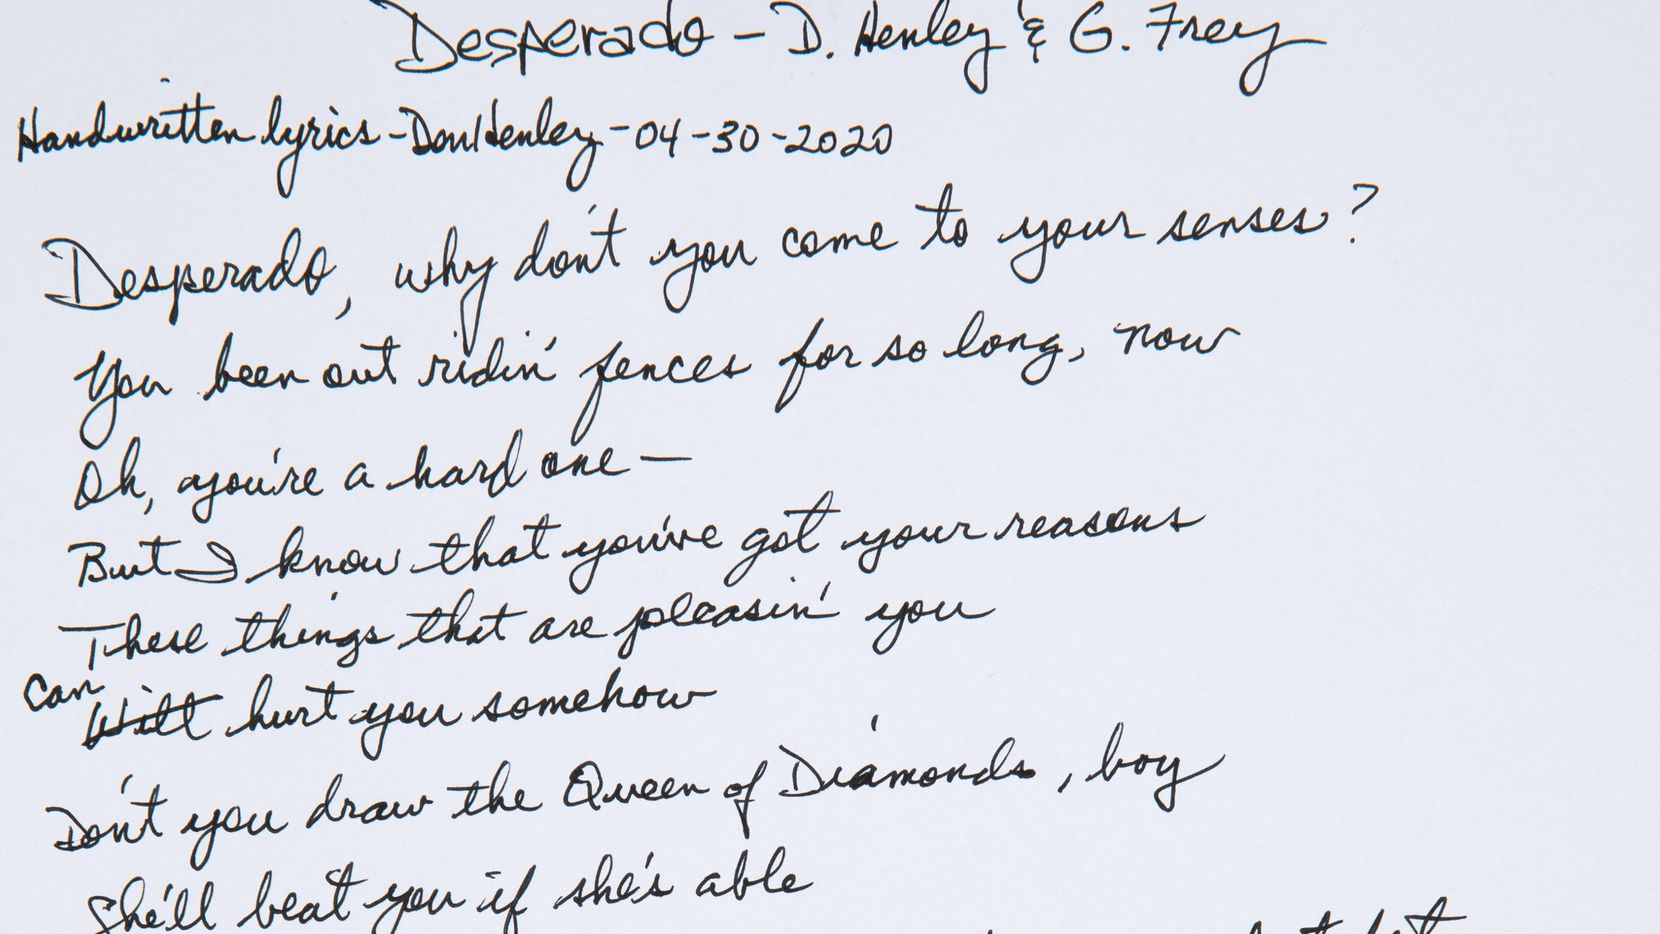 """Don Henley and Glenn Frey's handwritten lyrics to the Eagles' """"Desperado"""" sold for $33,600 at a charity auction held by Heritage Auctions on May 13."""